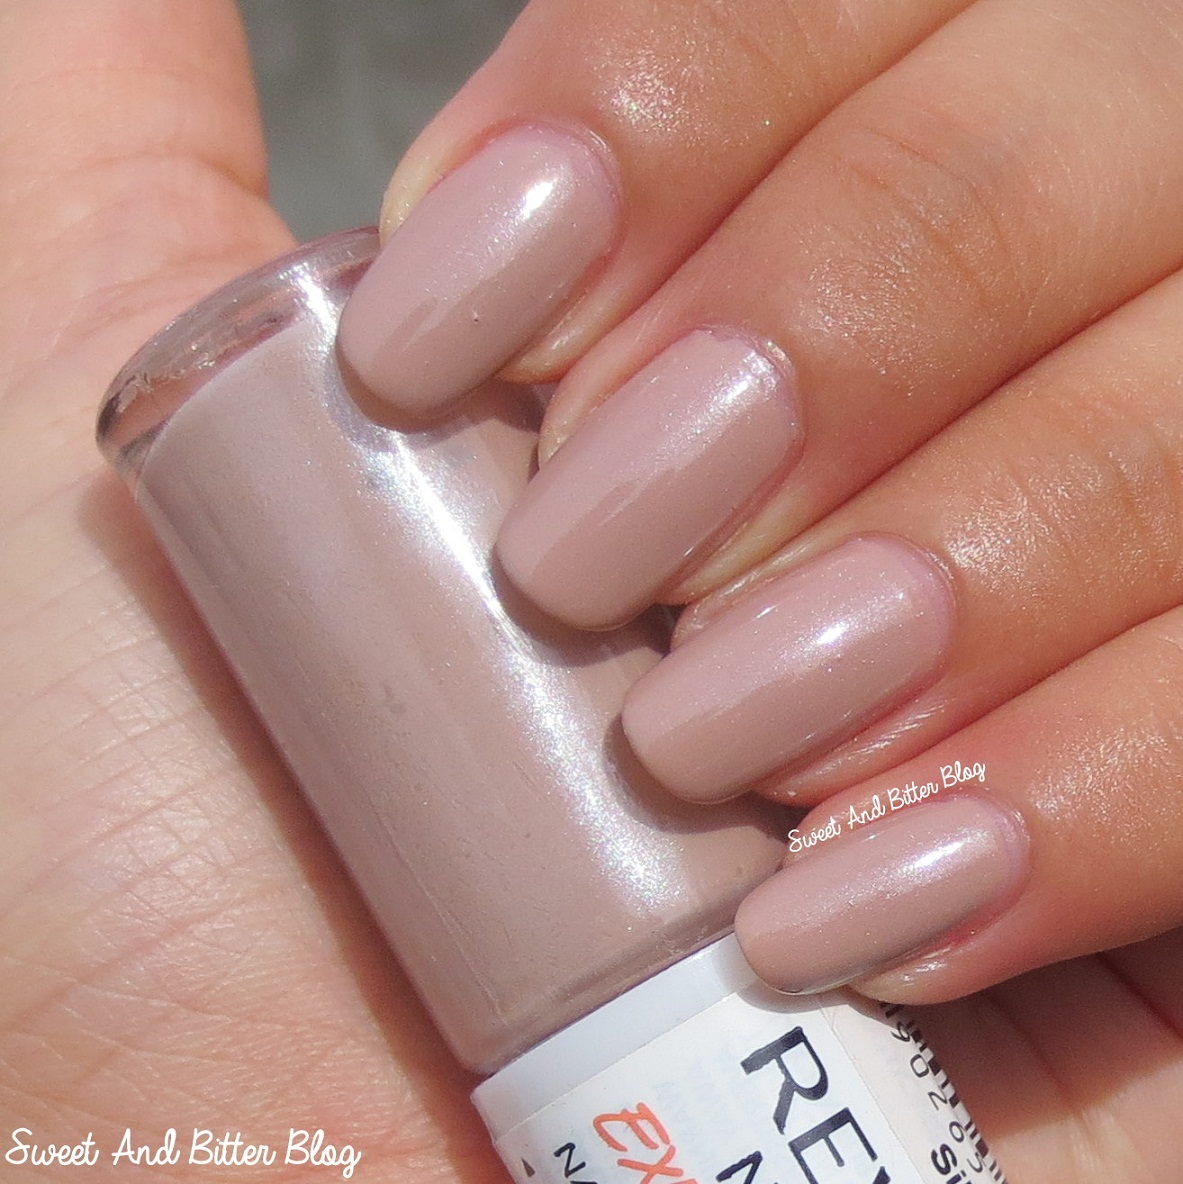 Revlon Nail Art Expressionist Silhouette Swatch And Review ...